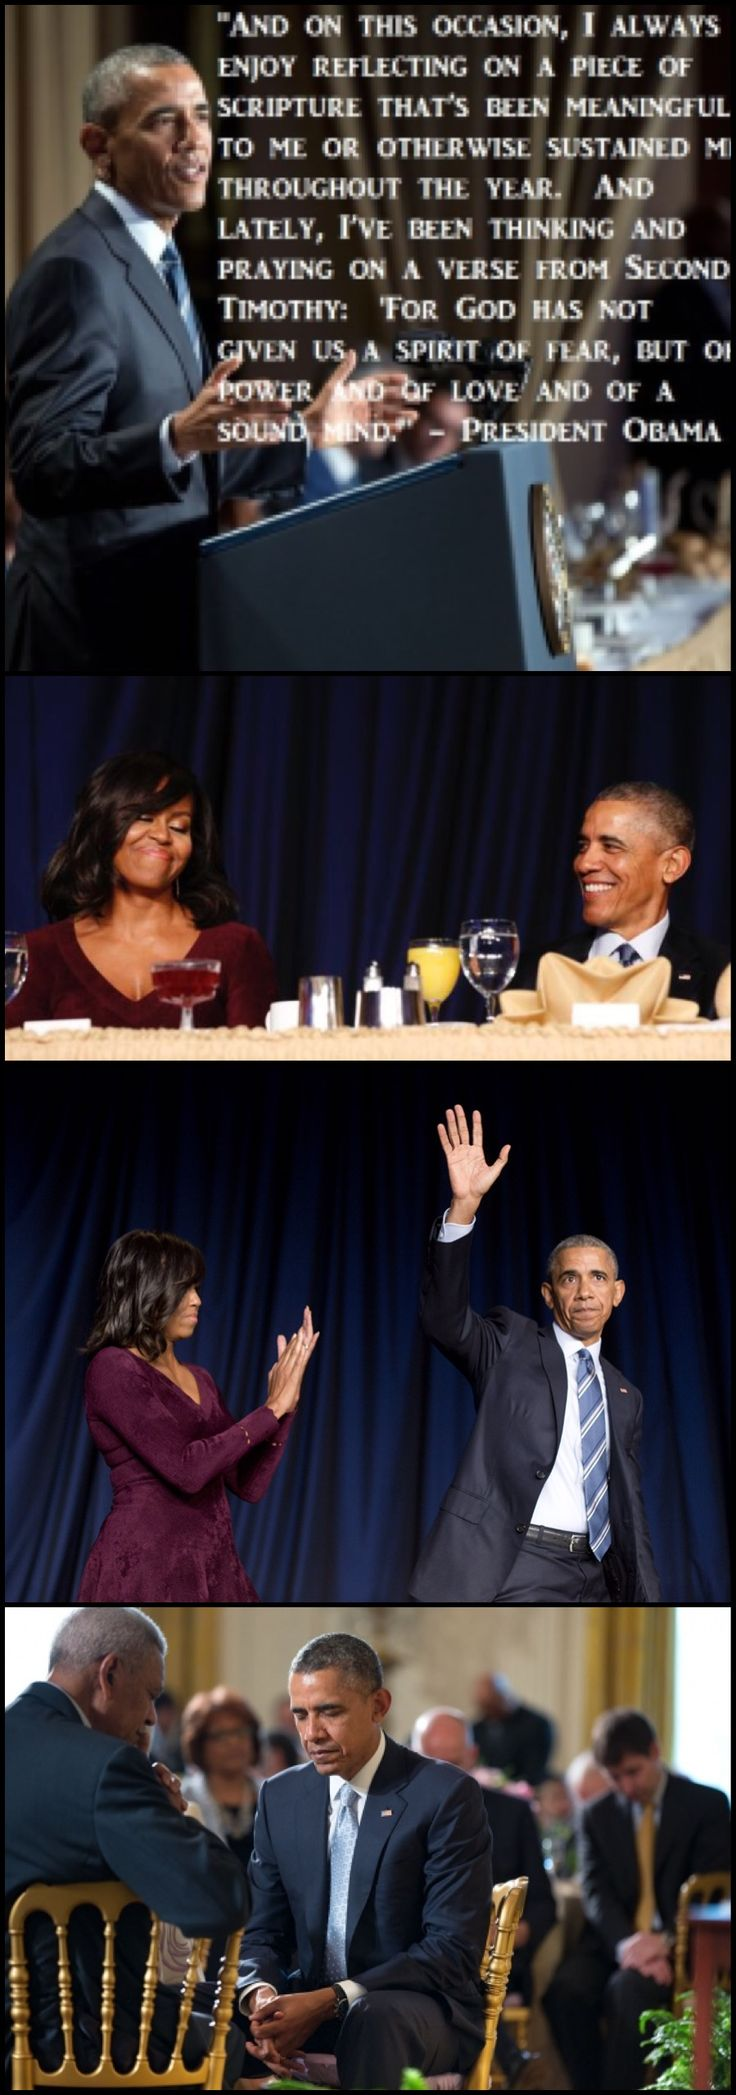 """""""God has not given us a spirit of fear, but of power and of love and of a sound mind,"""" the President Barack Obama said. #44thPresident #BarackObama #received applauds from #FirstLady #MichelleObama and other #guests after #speaking at the #National #Prayer #Breakfast in Washington, D.C. February 2016   #Obama44 #ObamaLegacy #ObamaHistory #ObamaLibrary #ObamaFoundation Obama.org"""